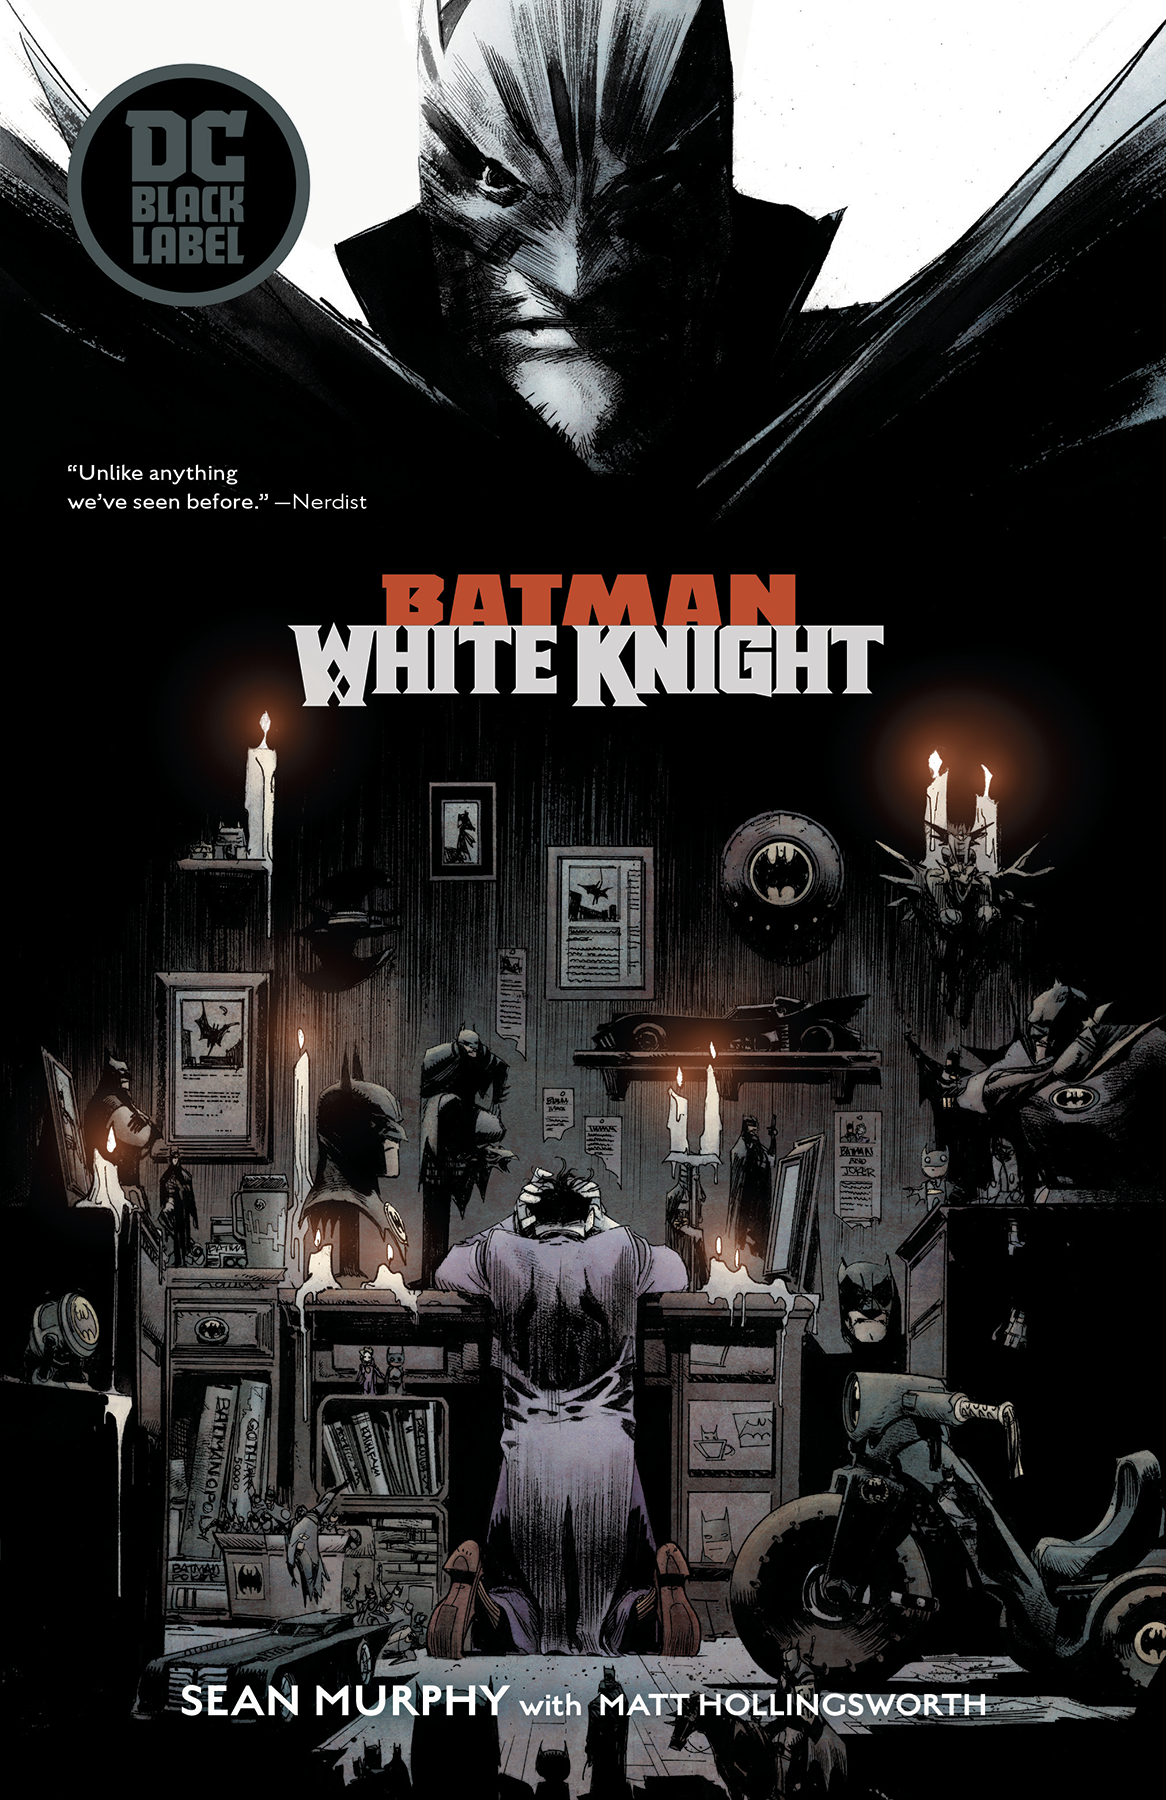 BATMAN WHITE KNIGHT (Sean Murphy…